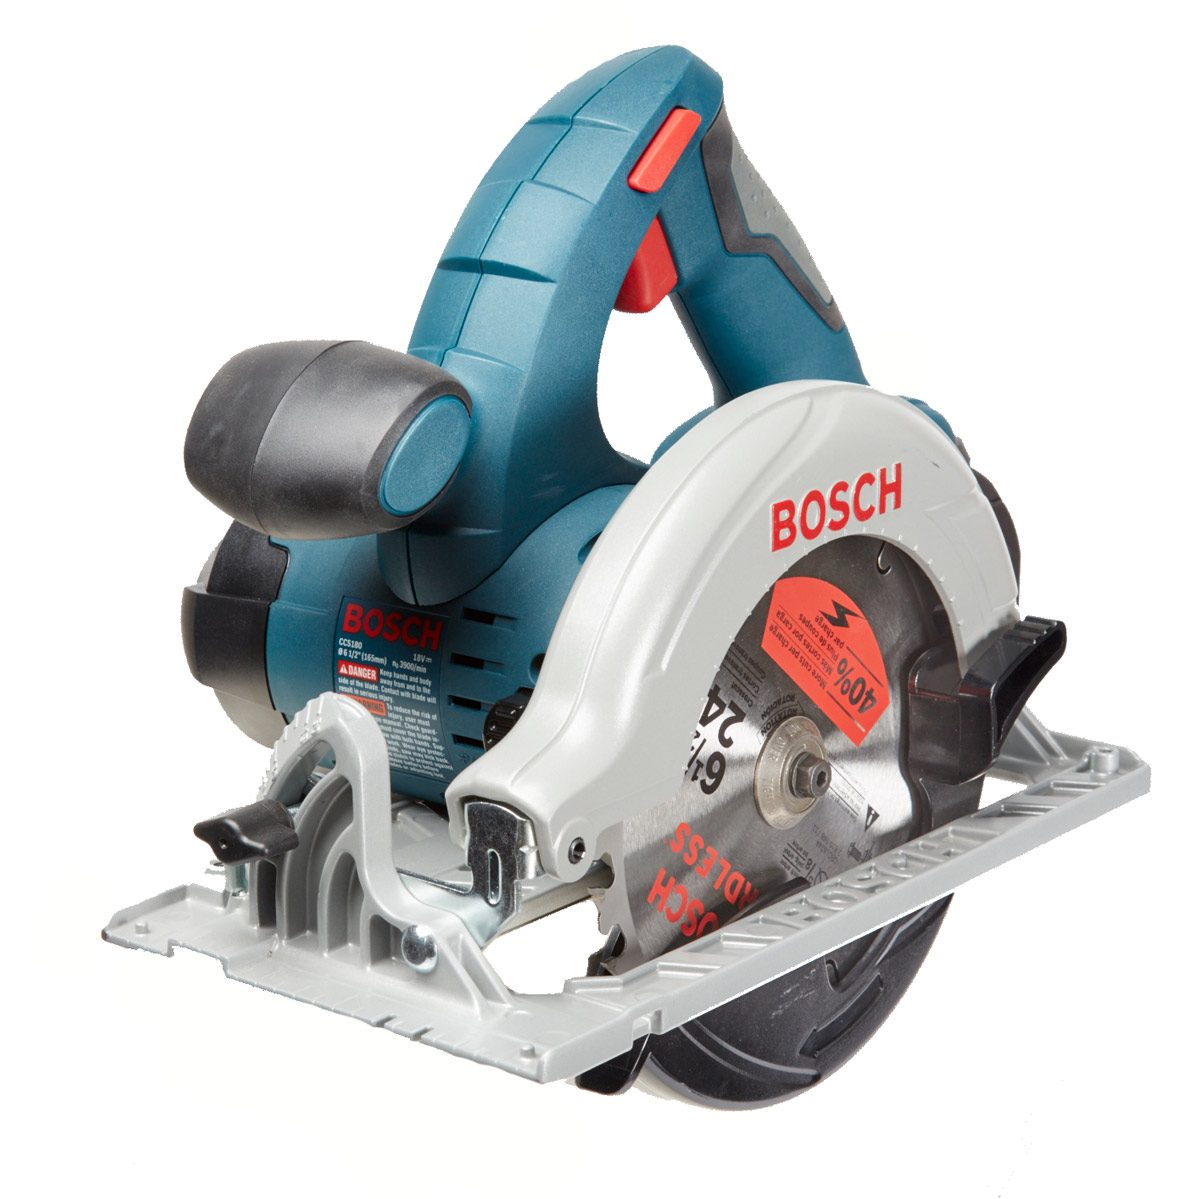 2018 best in diy what to look for in a cordless circular saw fh18djf58352005 bosch cordless circular saw greentooth Choice Image